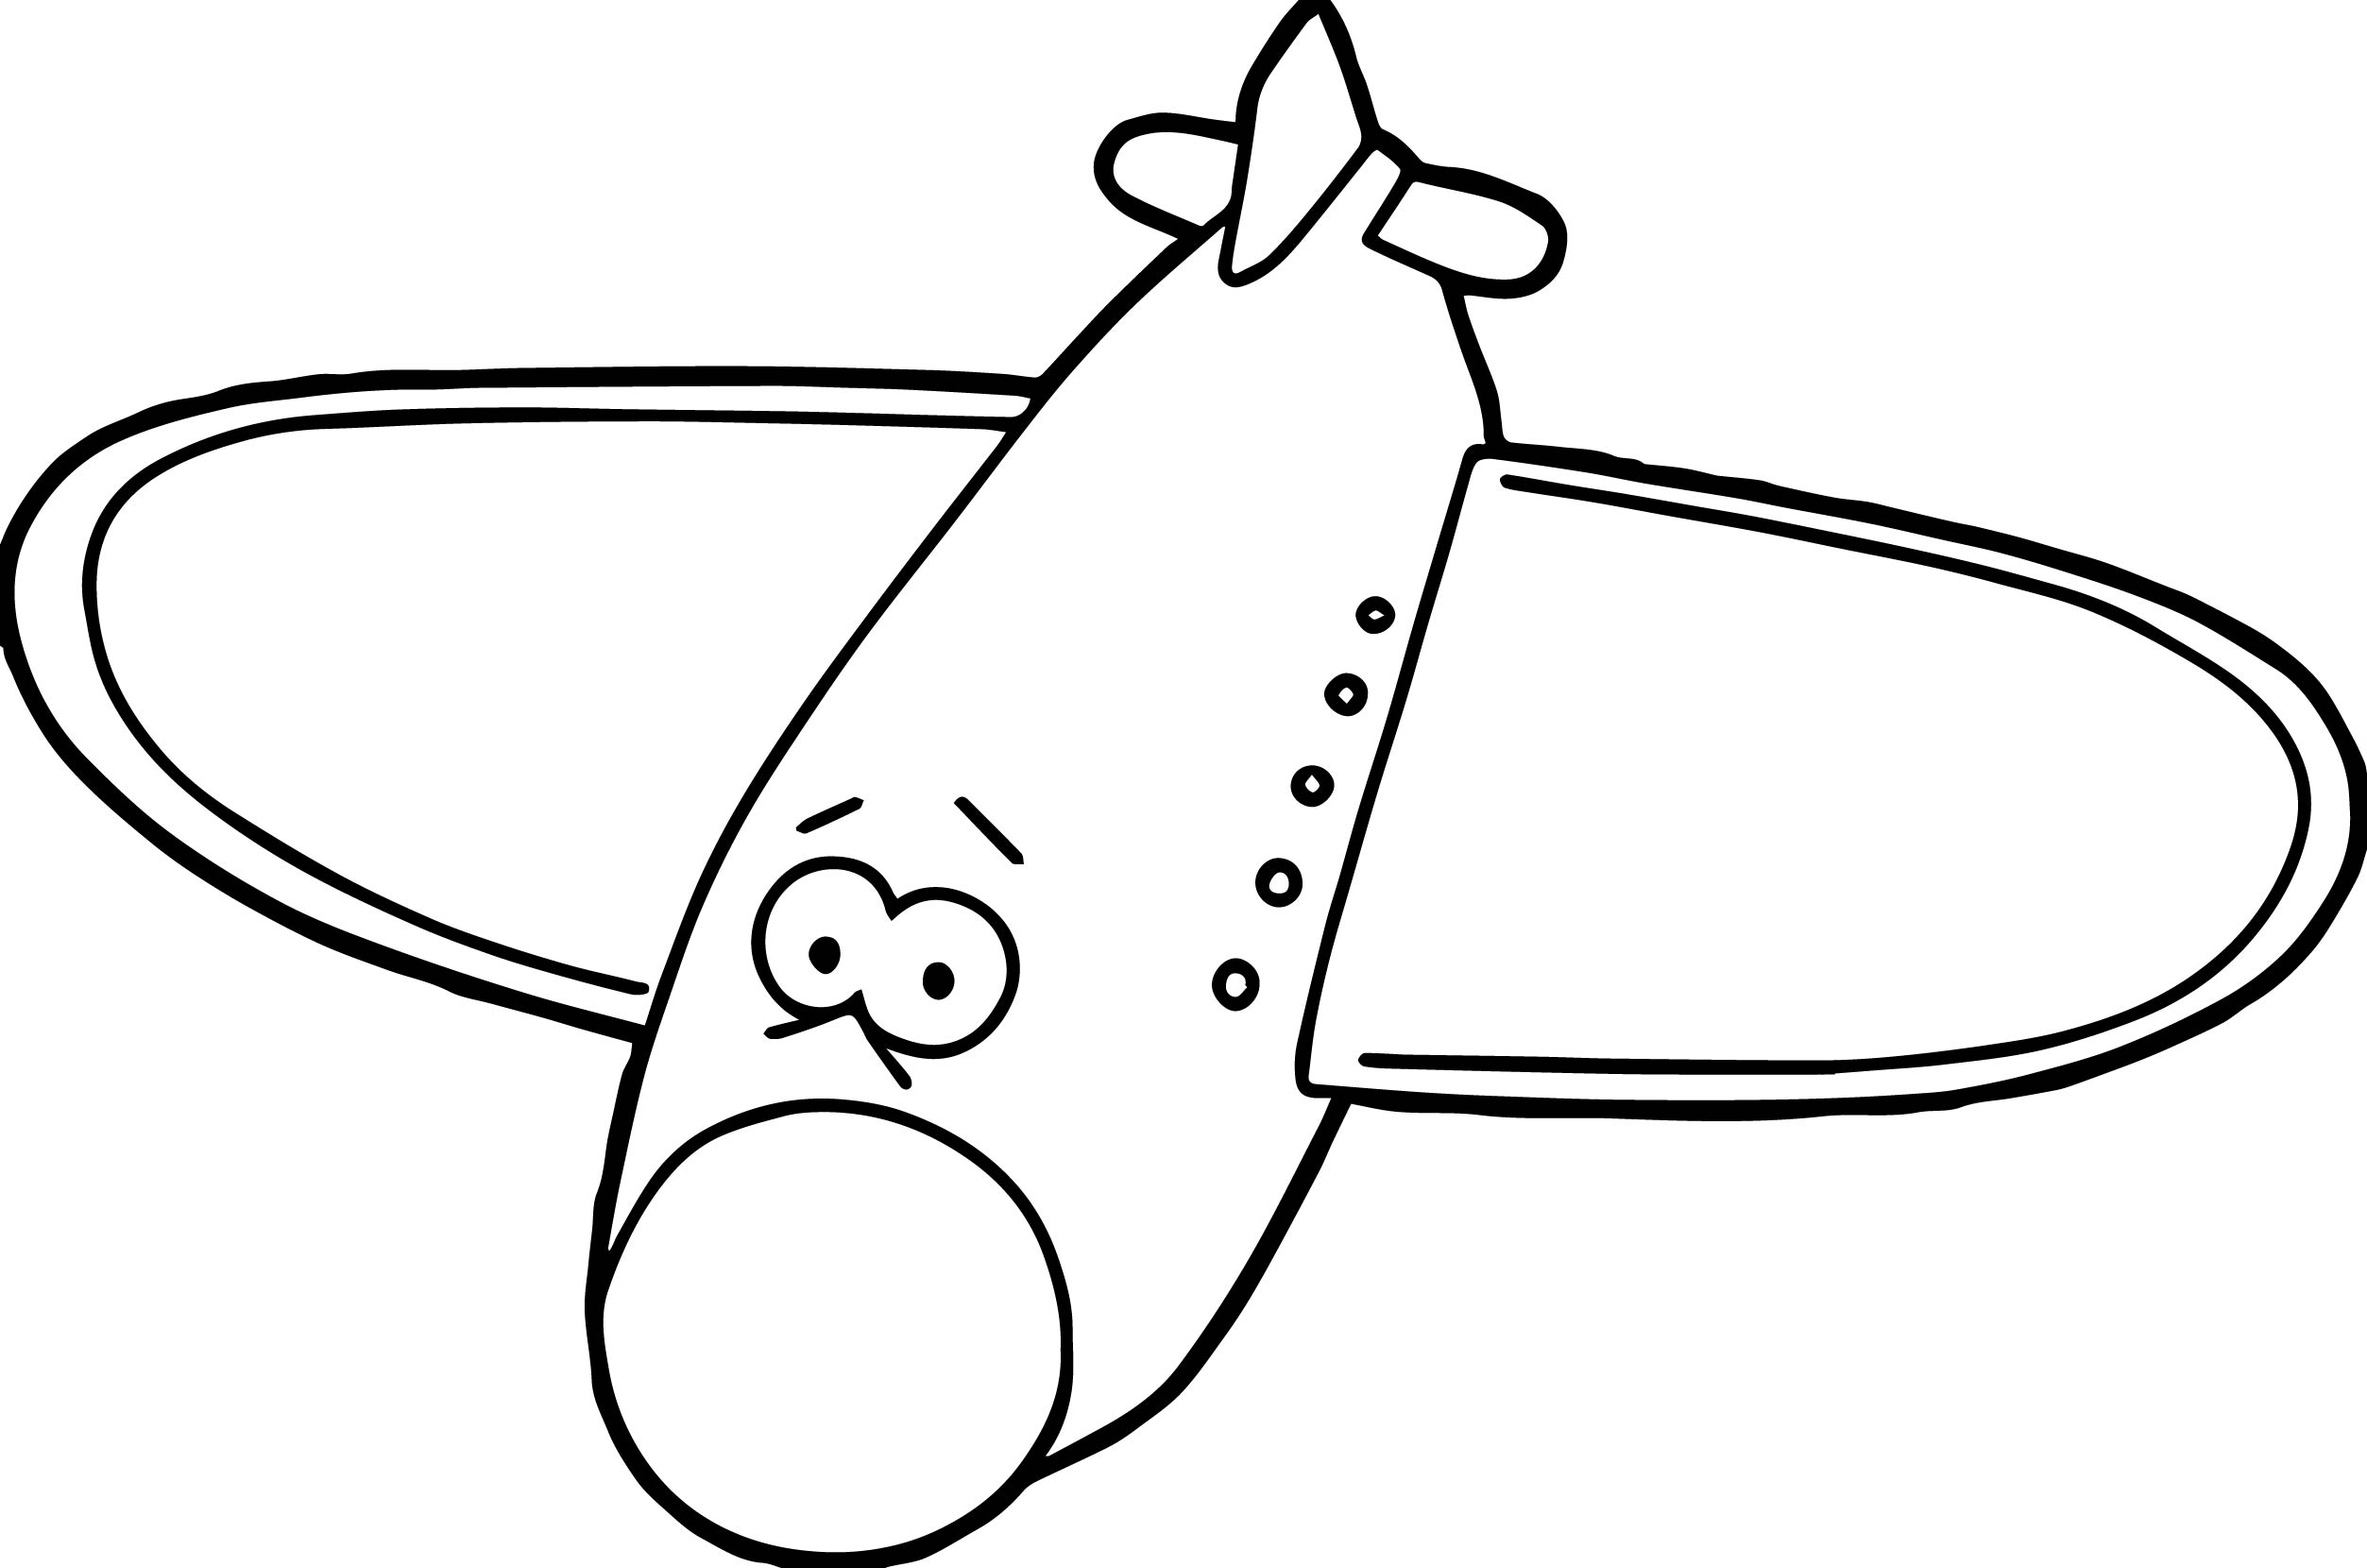 comic cartoon airplane coloring page wecoloringpage